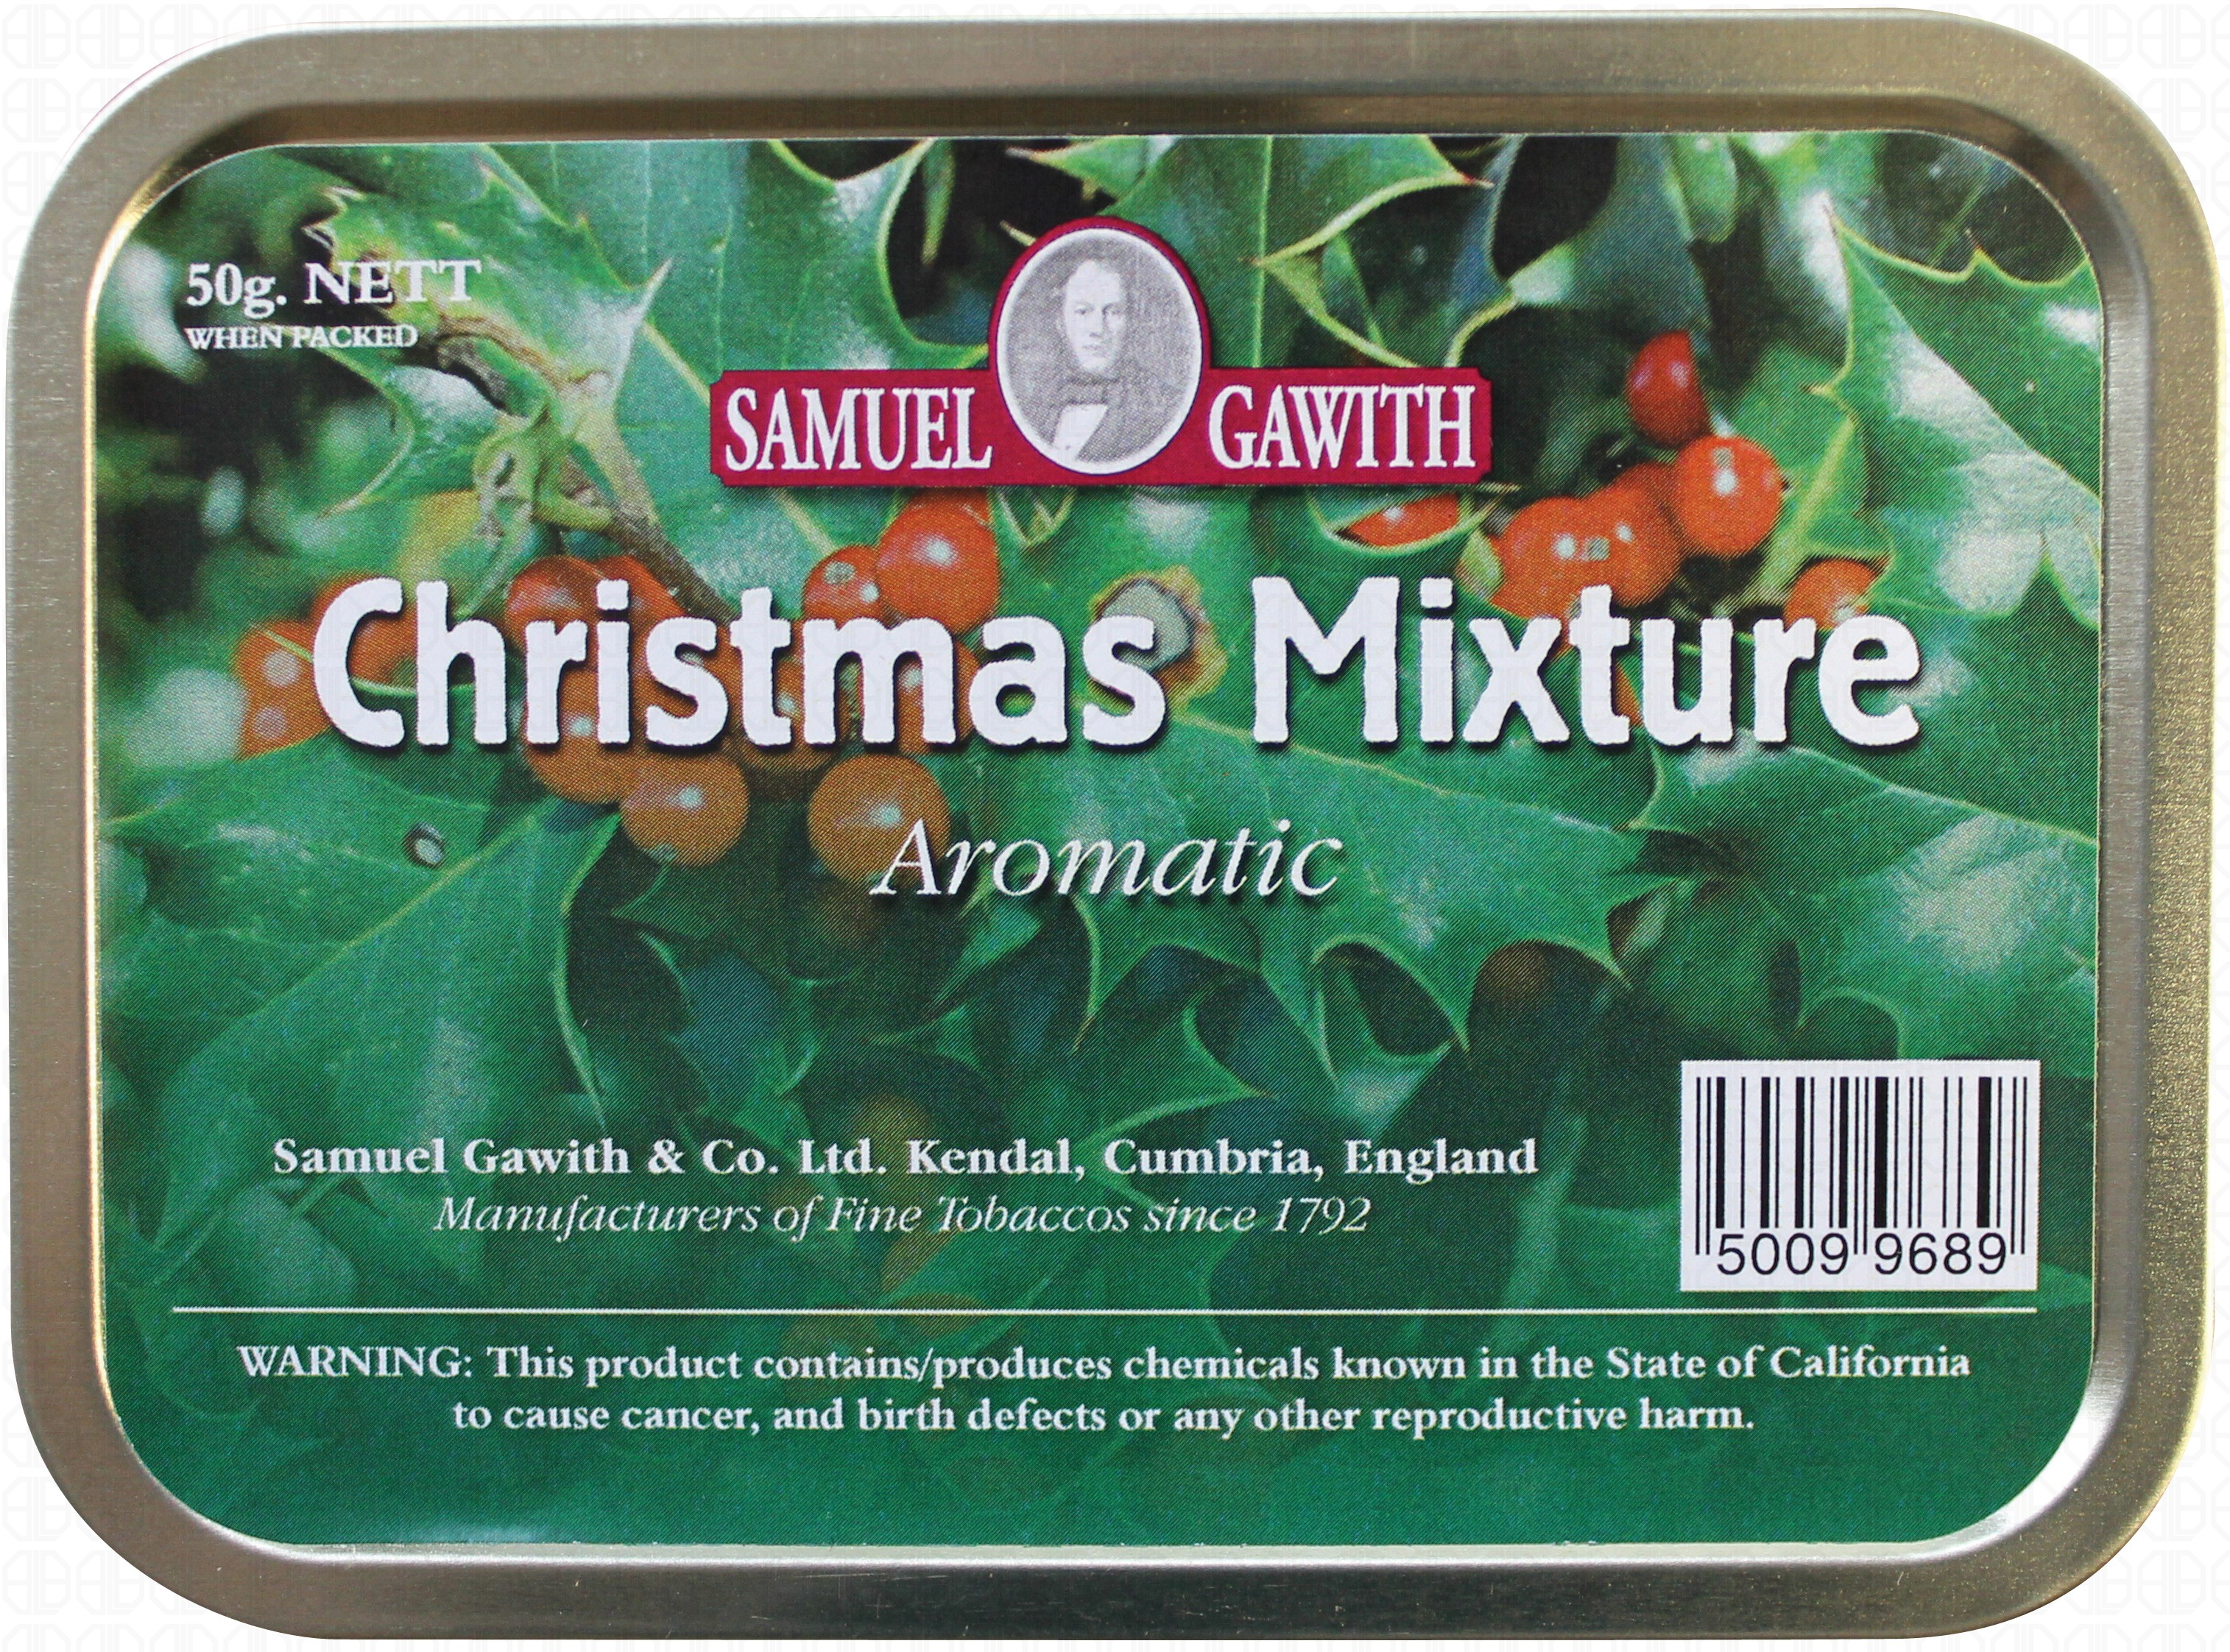 Samuel Gawith Christmas Mixture (50g)